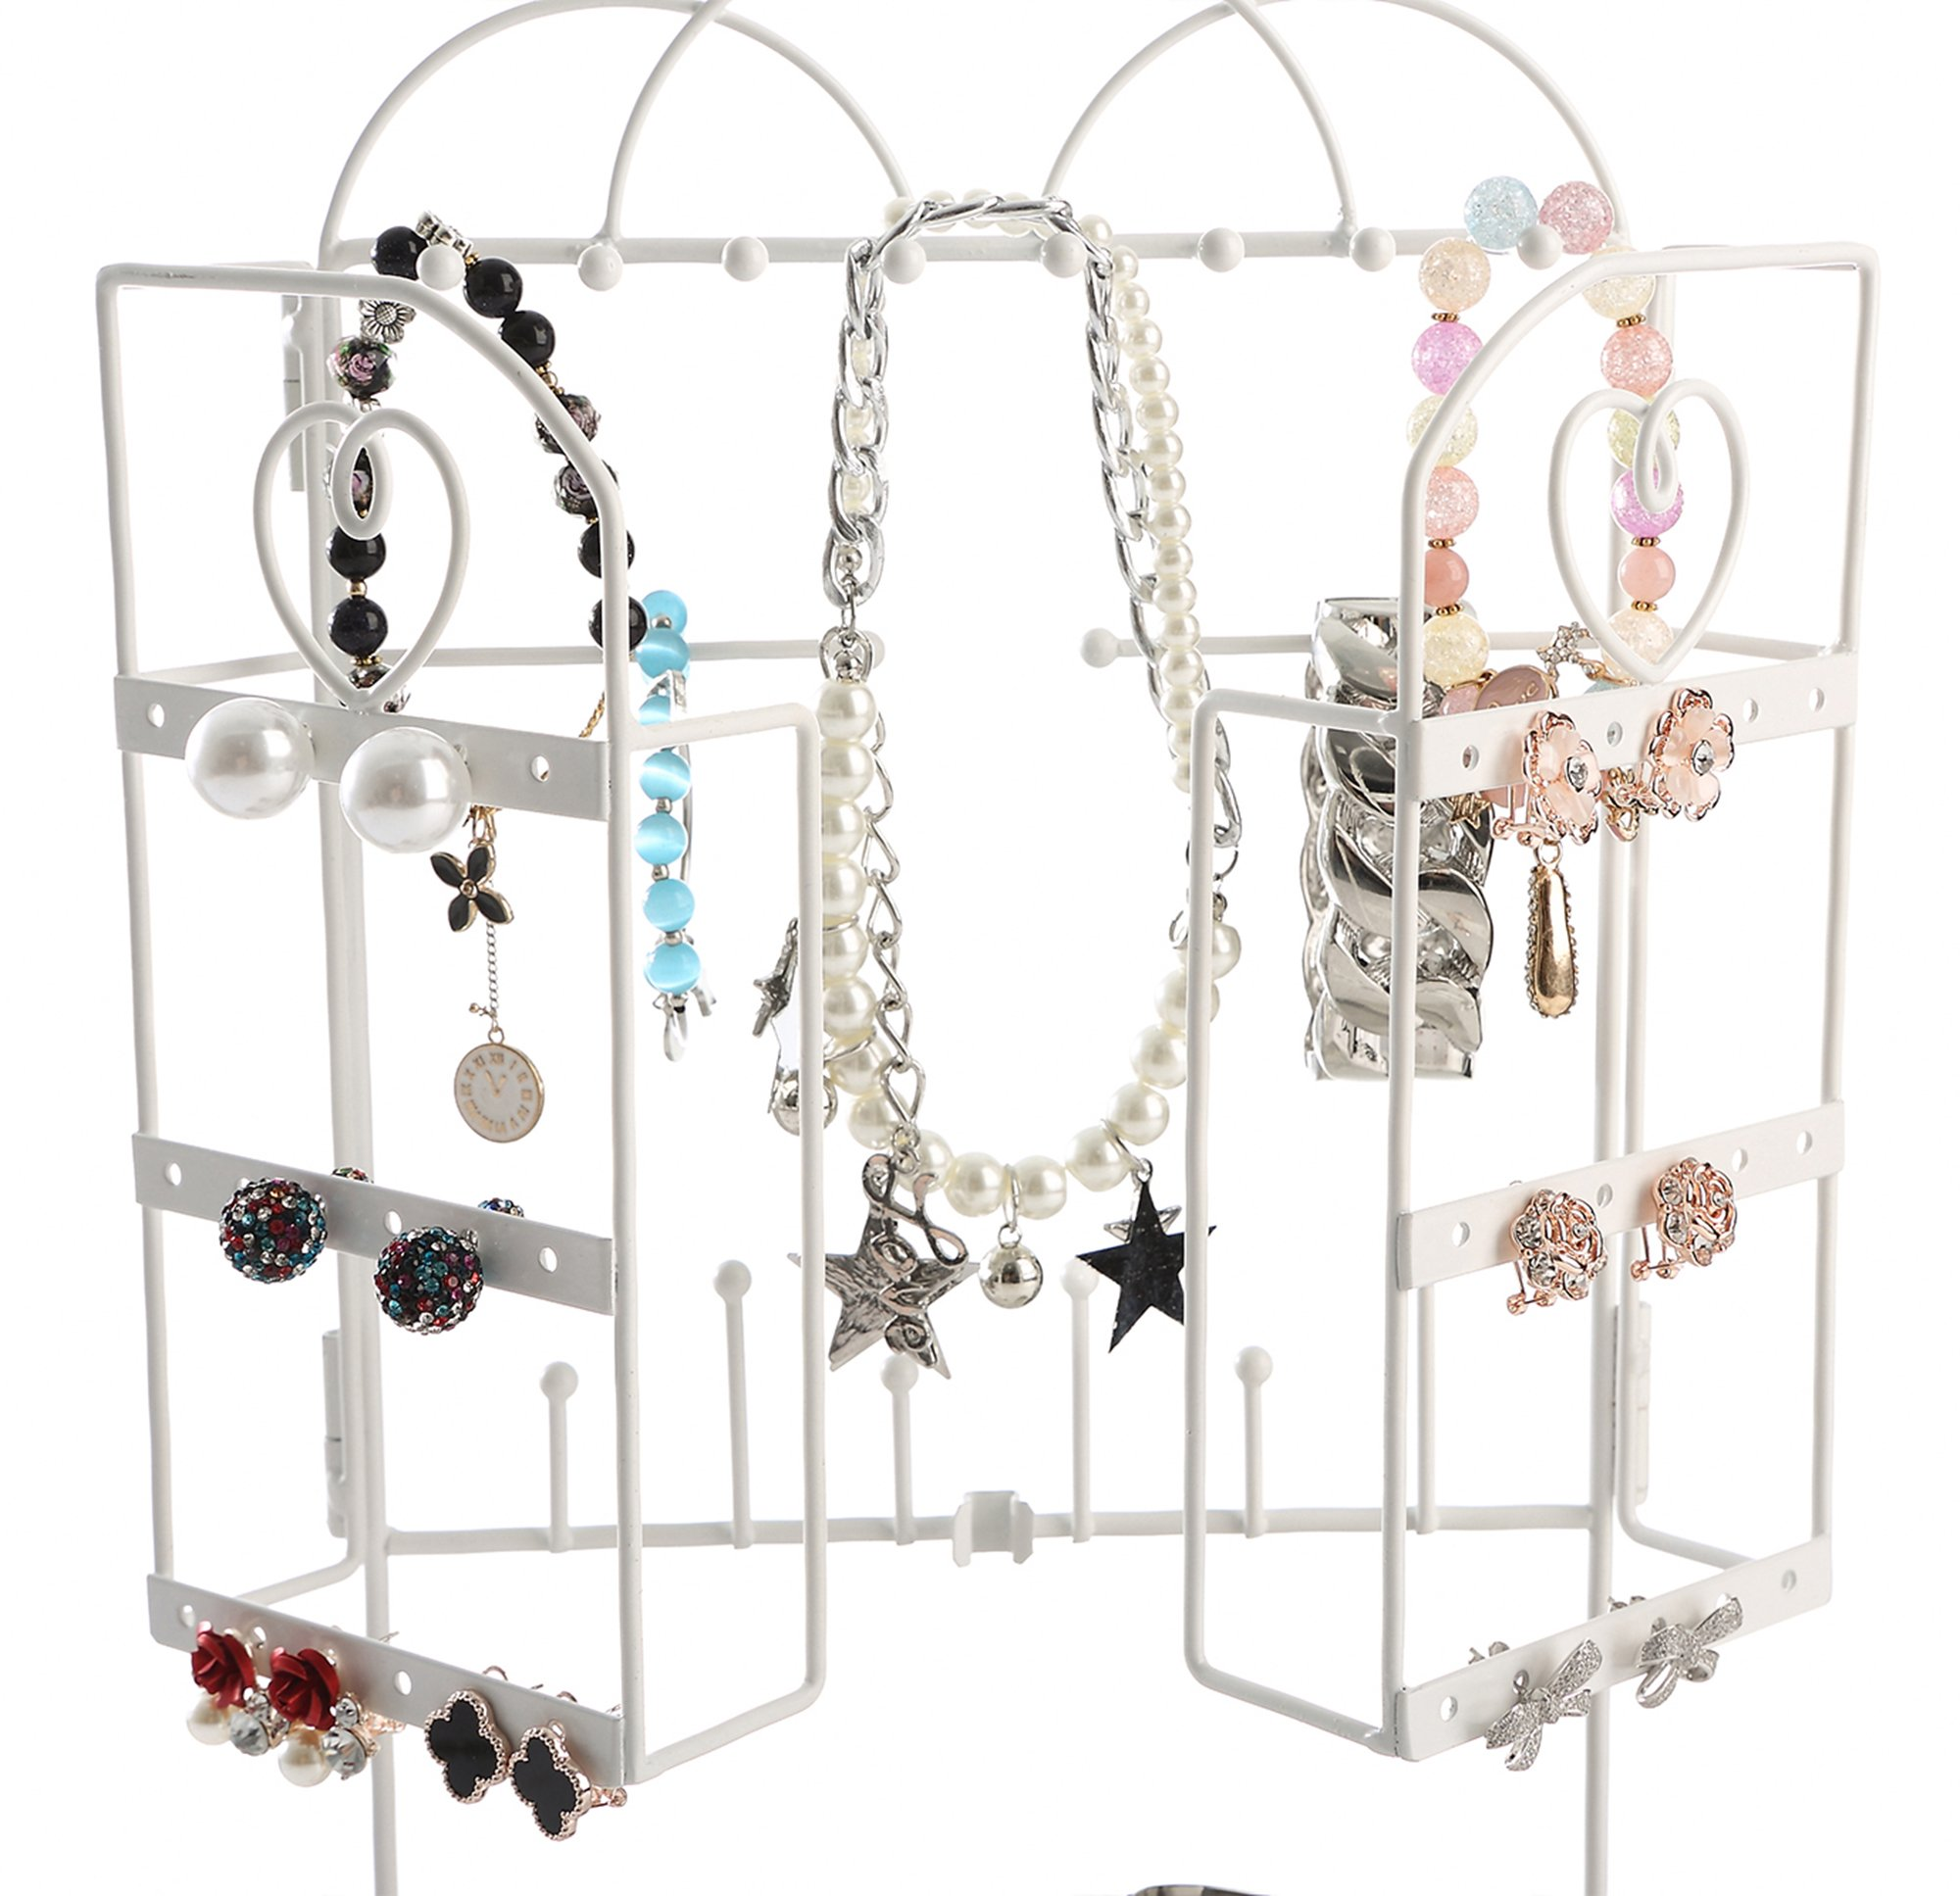 White Metal Foldable Jewelry Organizer Tree Rack for Bracelet, Earrings, Necklace w/ Ring Tray